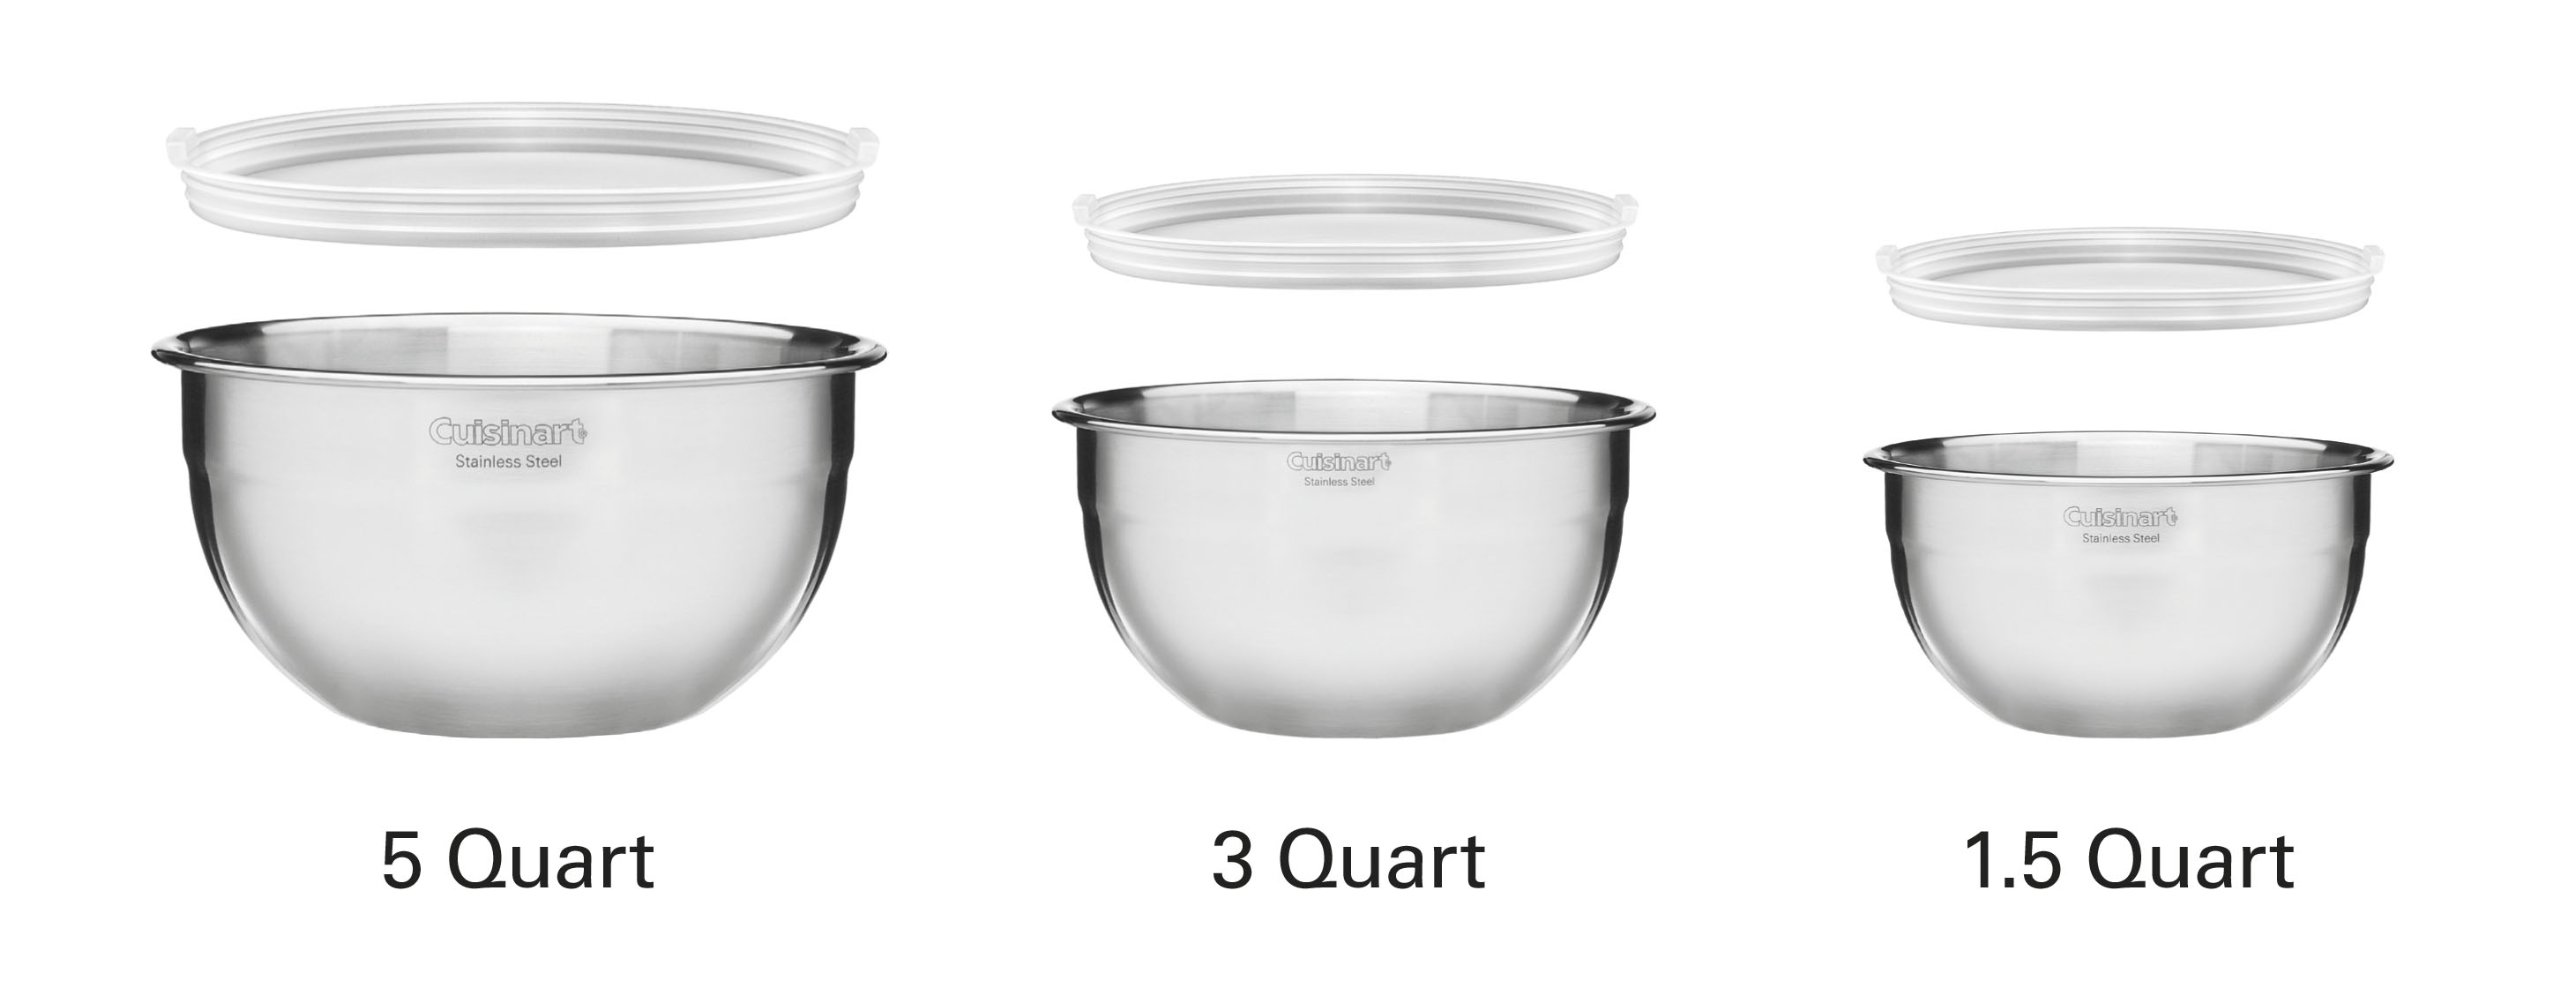 Cuisinart CTG-00-SMB Stainless Steel Mixing Bowls with Lids, Set of 3 by Cuisinart (Image #4)